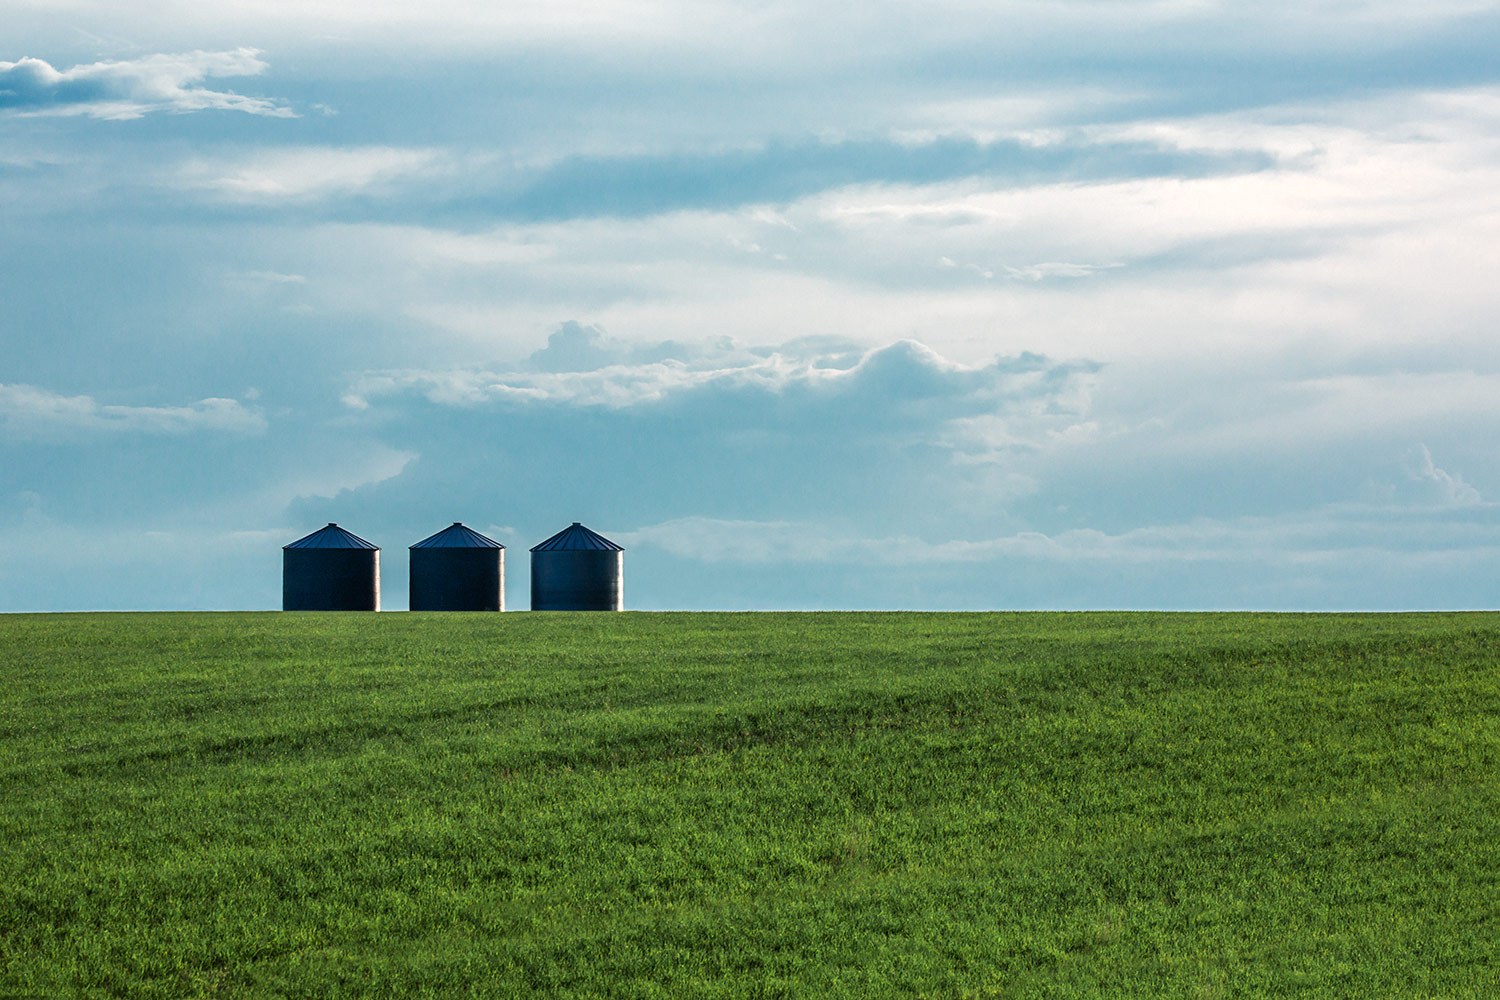 Three Grain Bins